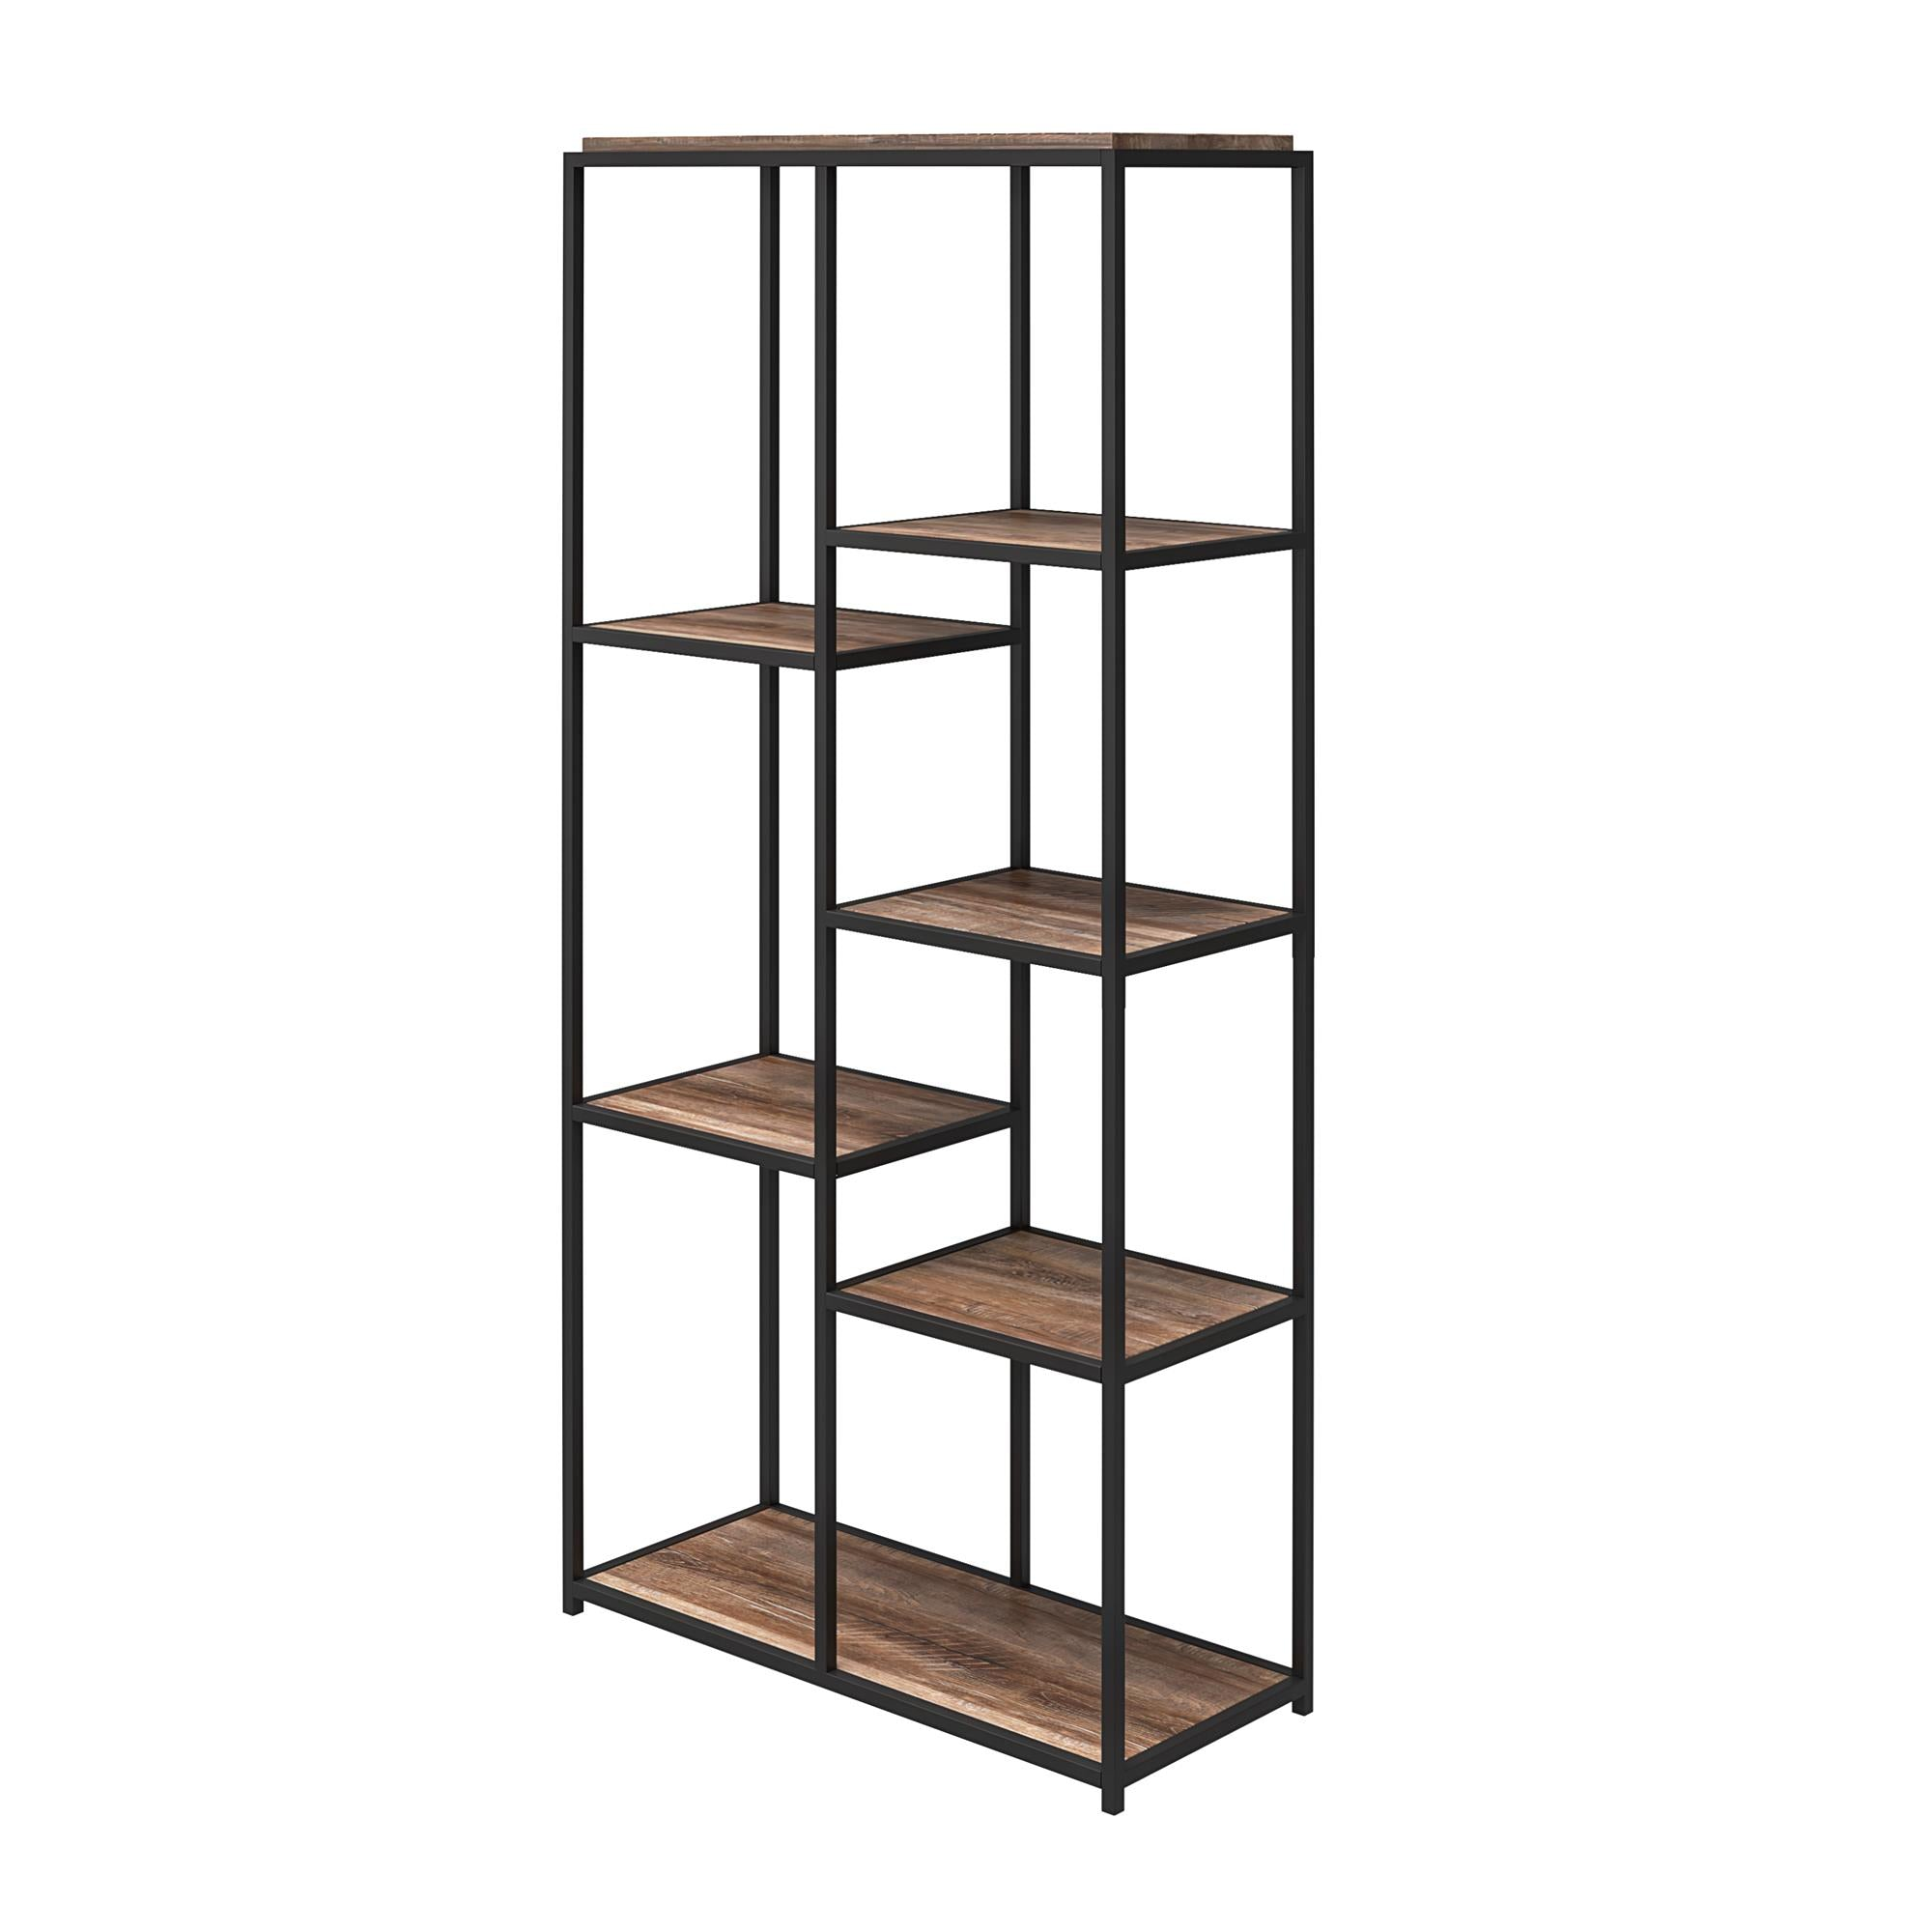 Queer Eye Quincy 5 Shelf Transitional Bookcase, Weathered Oak - FLJ CORPORATIONS